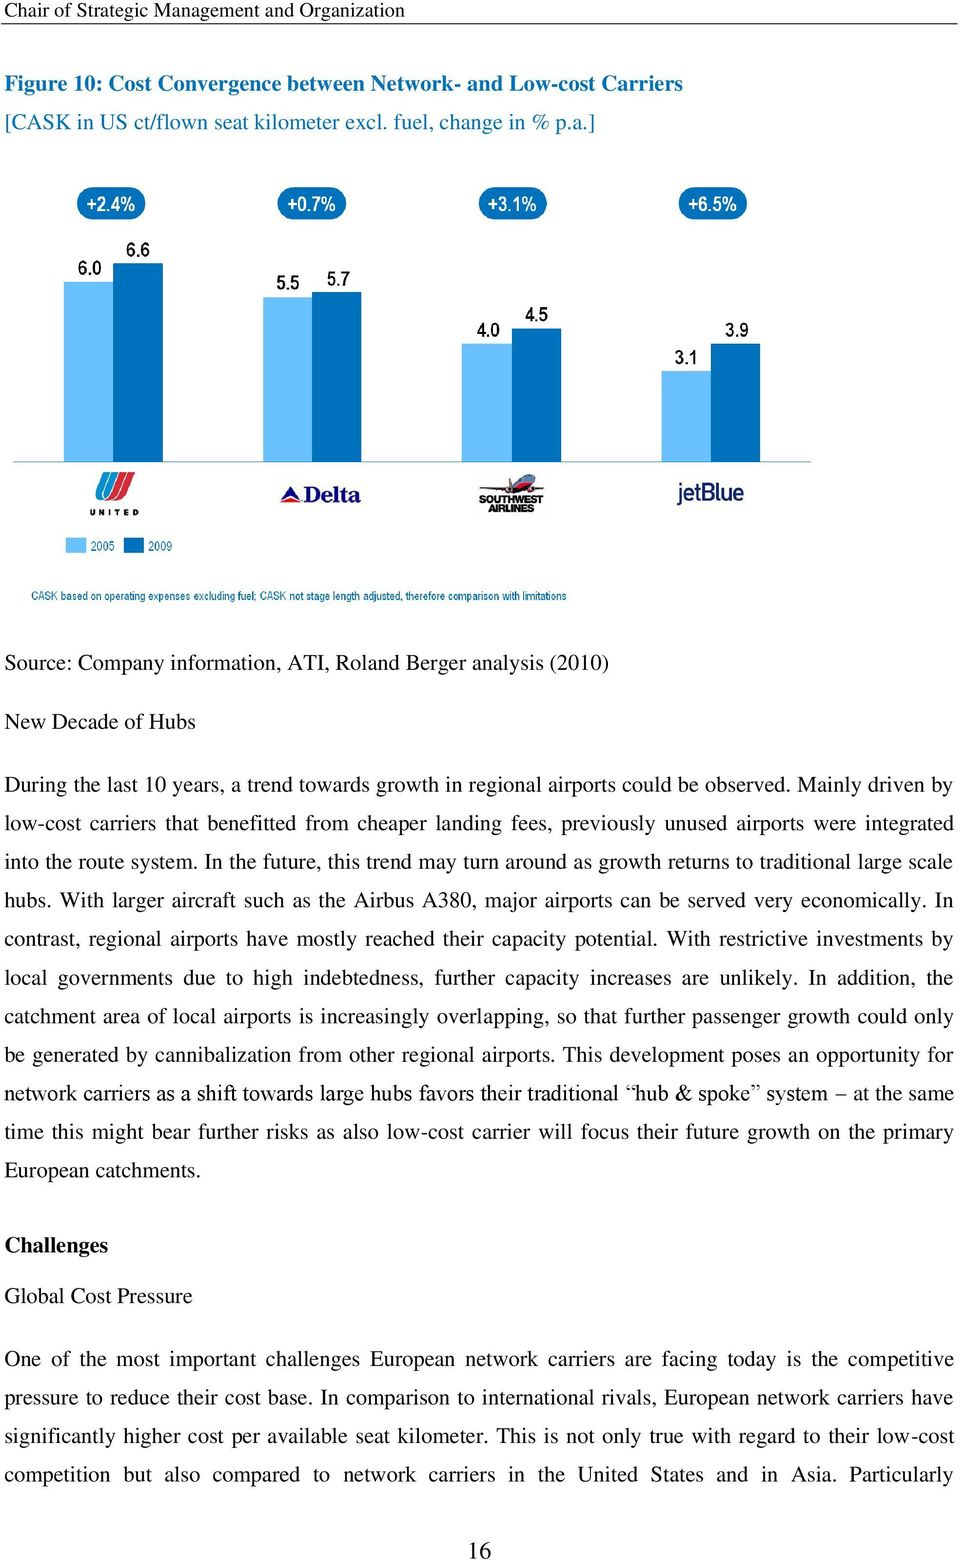 Mainly driven by low-cost carriers that benefitted from cheaper landing fees, previously unused airports were integrated into the route system.